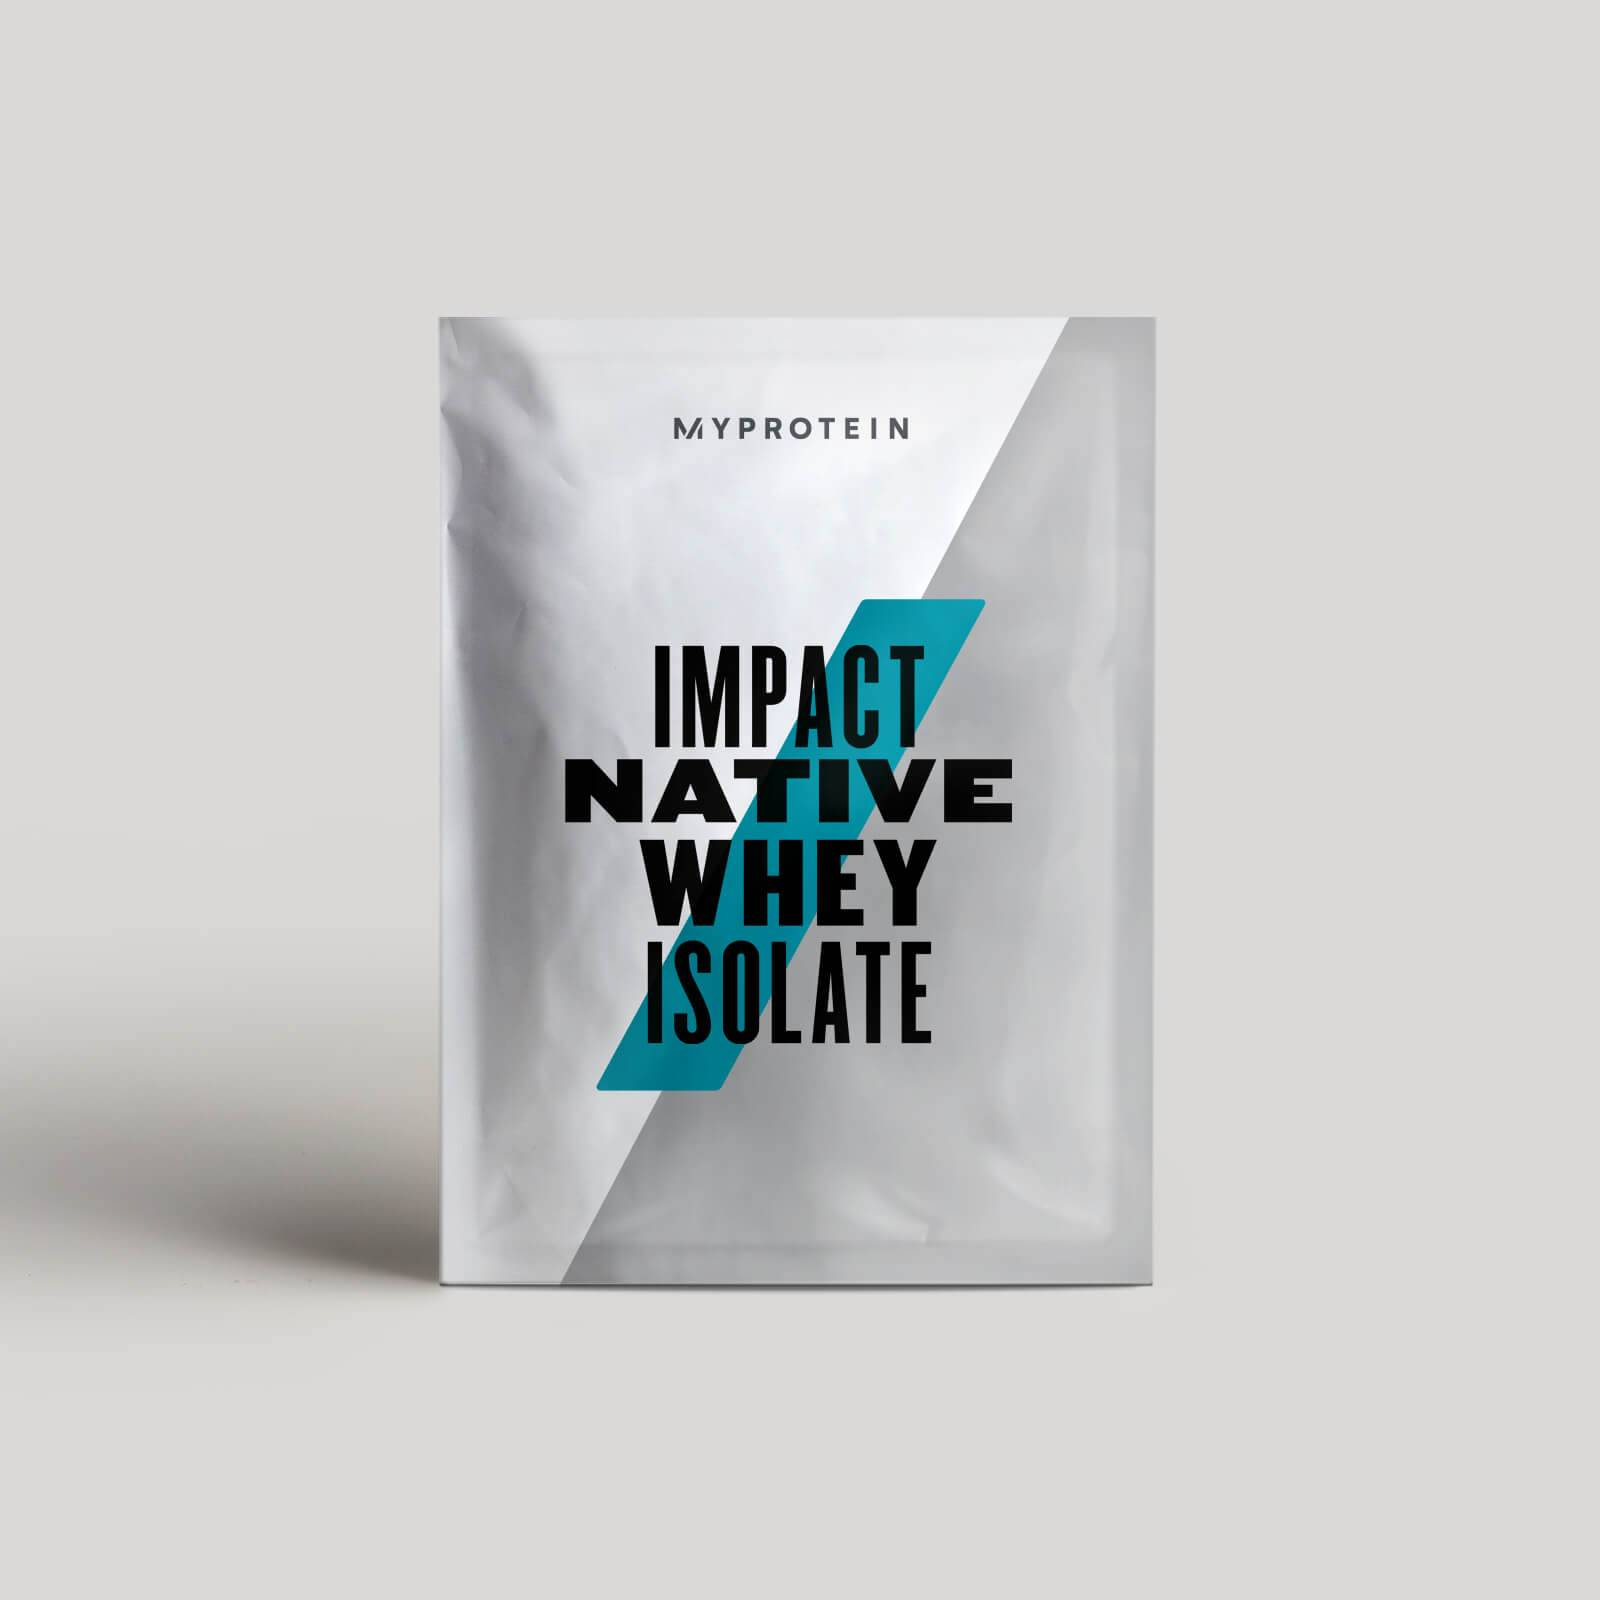 Myprotein Impact Native Whey Isolate (Sample) - 25g - Banane Flambées